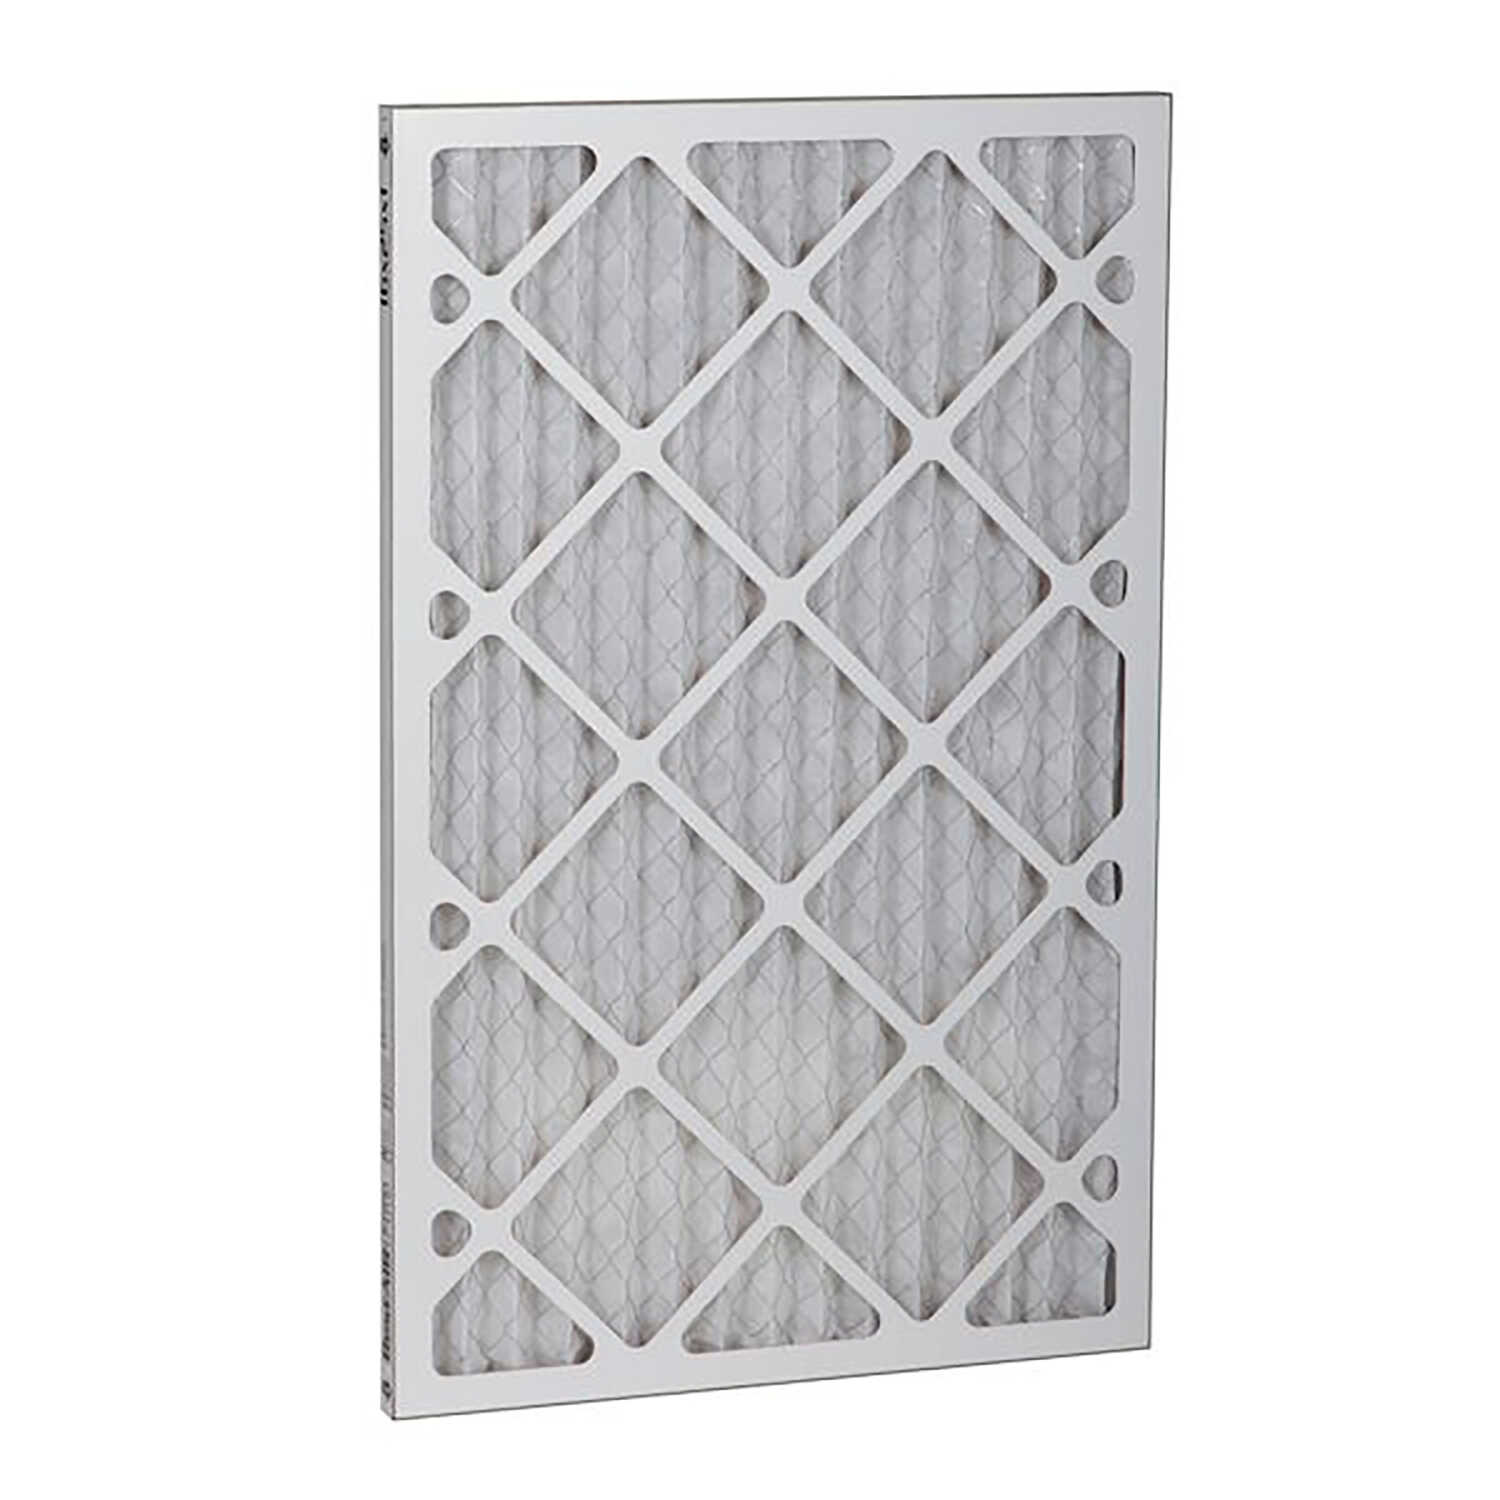 BestAir  18 in. H x 24 in. W x 1 in. D 8 MERV Furnace Filter